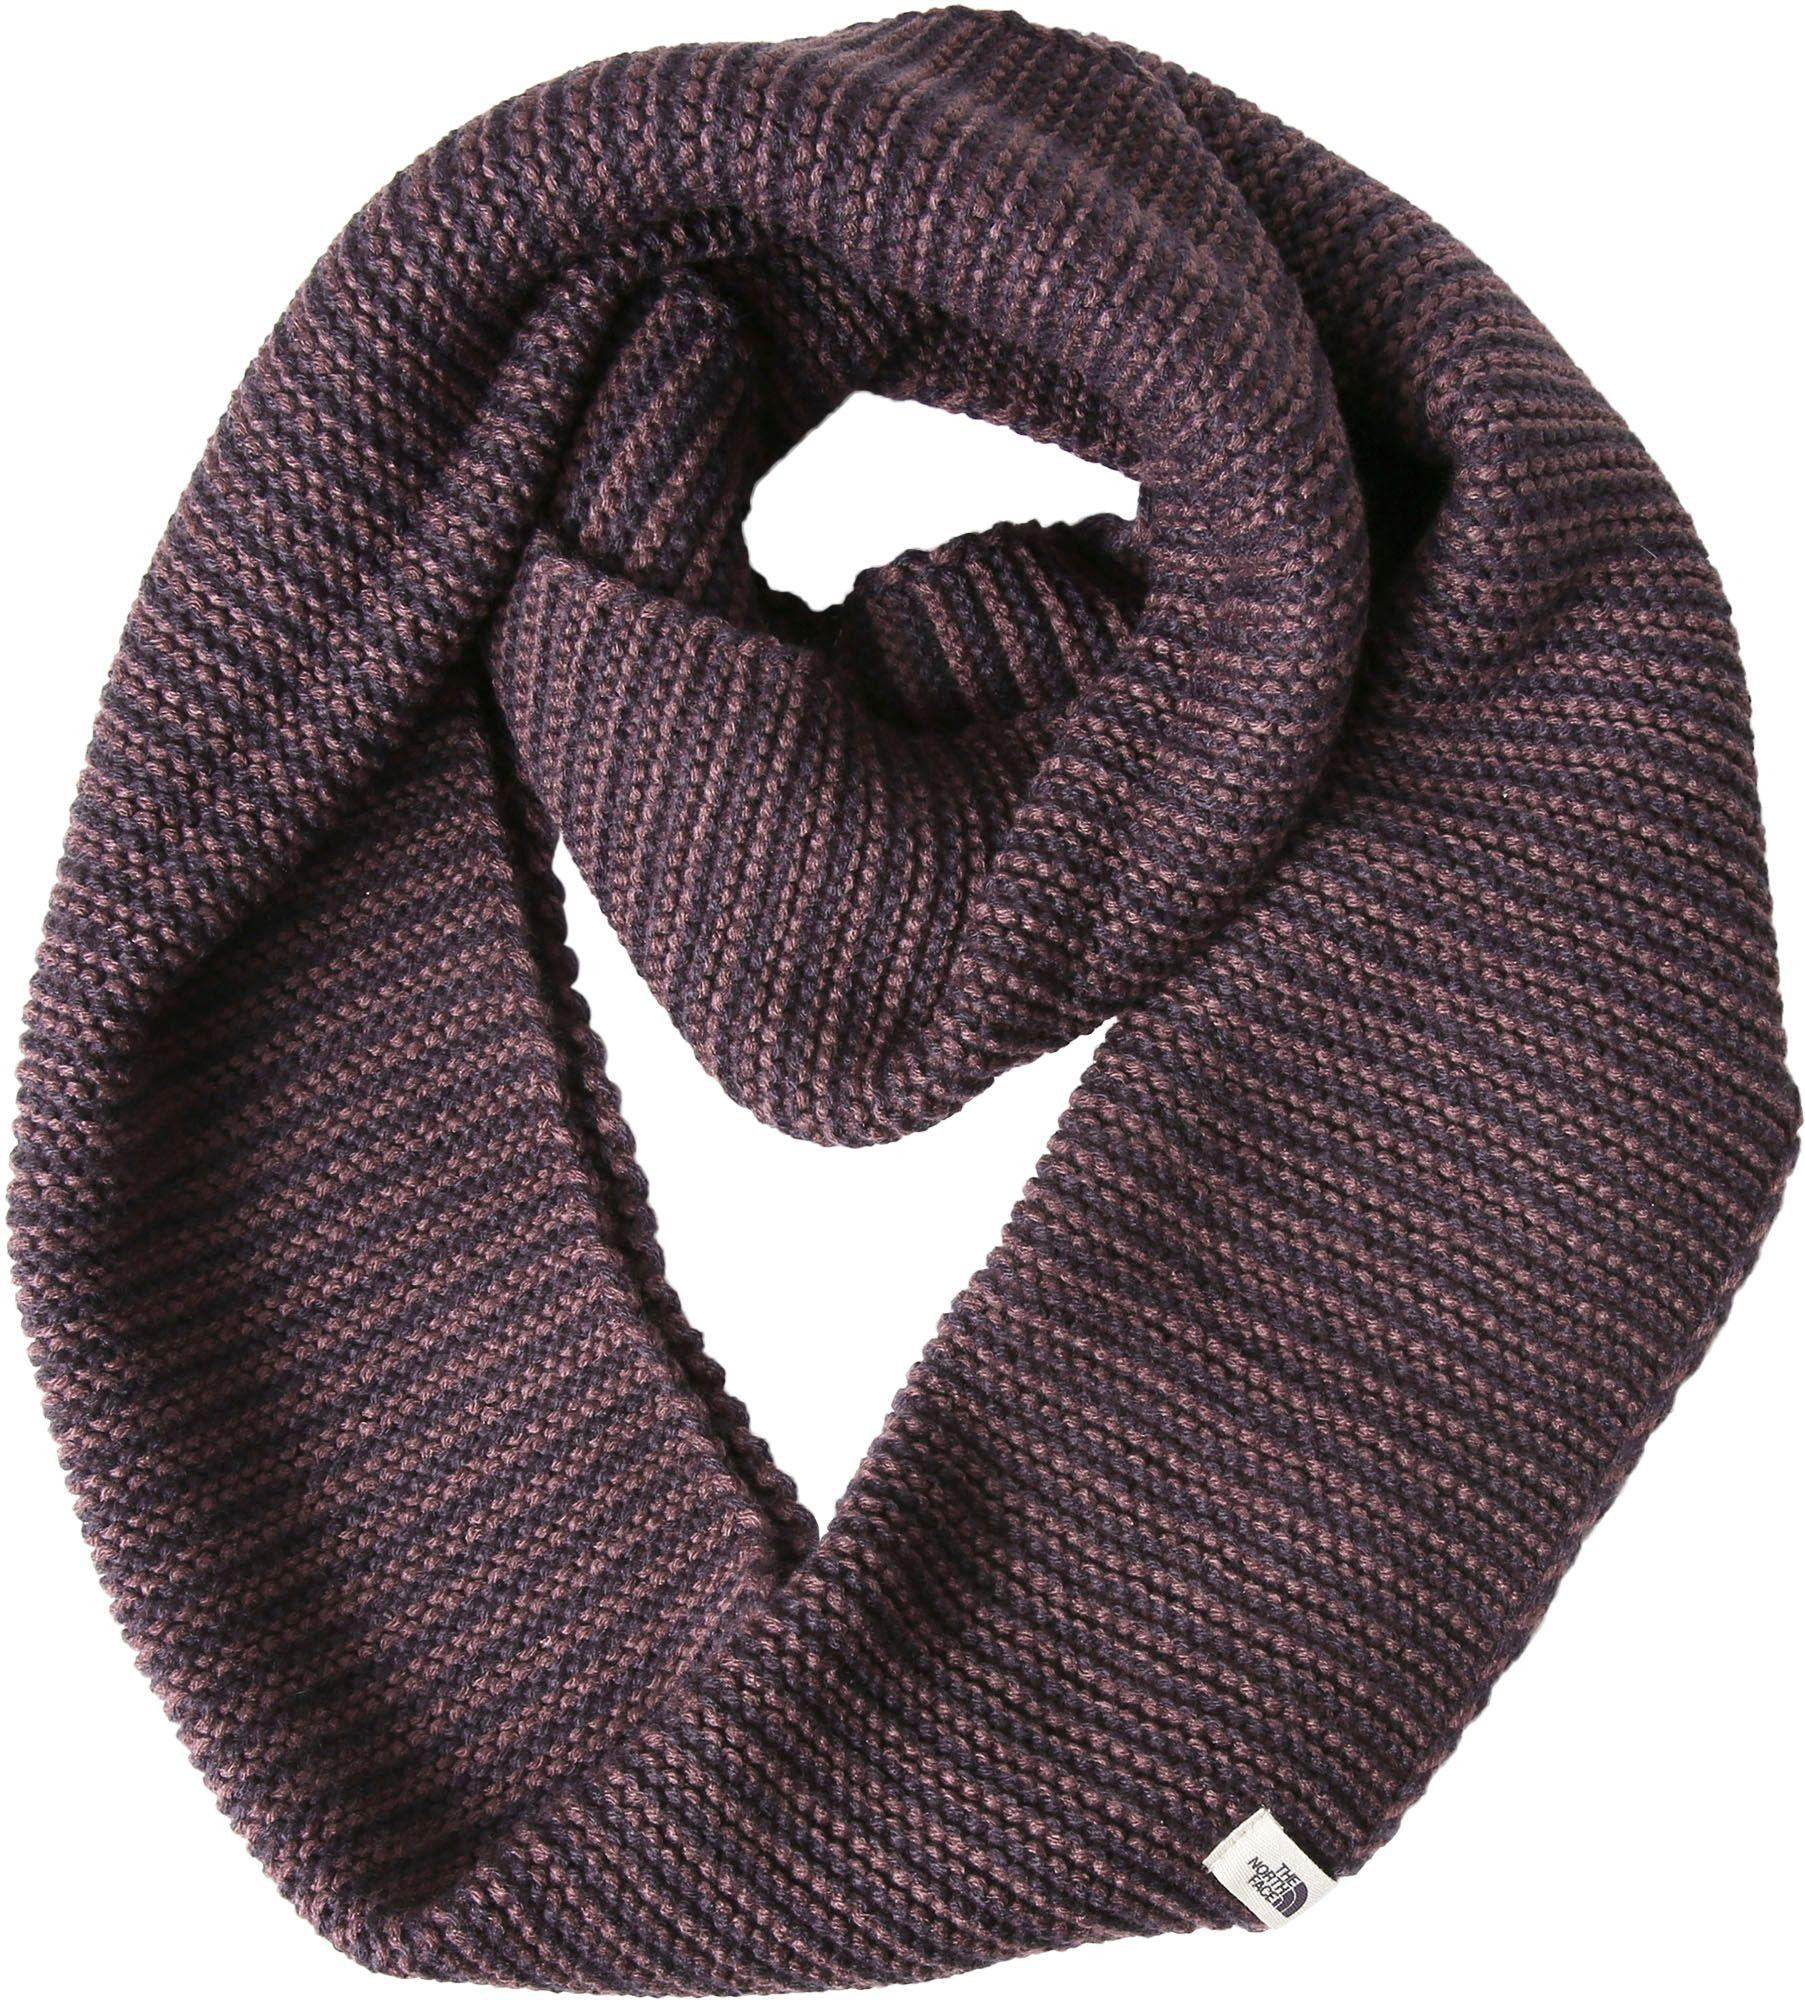 scarf ribbed cc com ccbeanie products weaved basket weave infinity knit